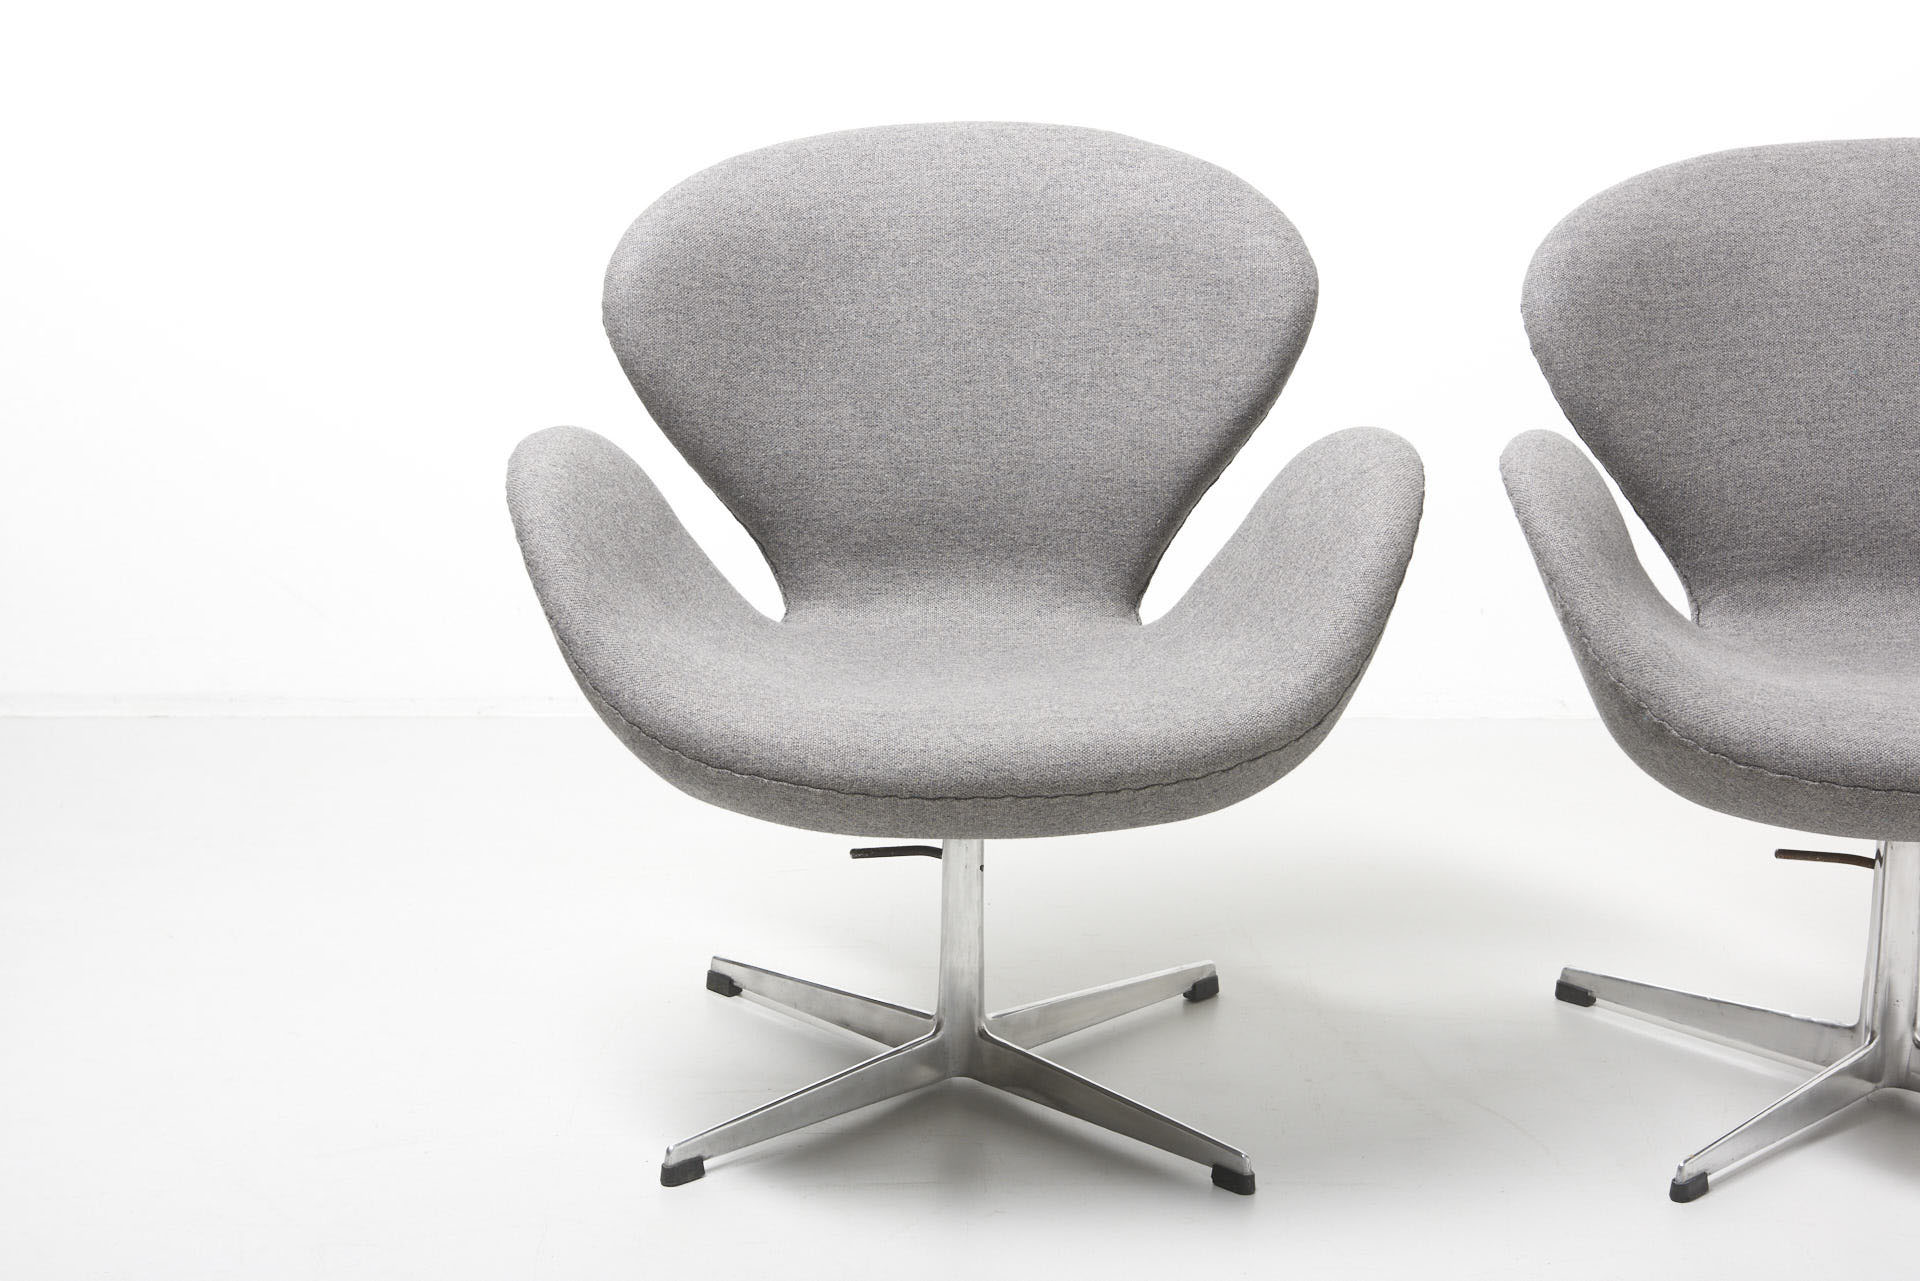 Arne Jacobsen A Pair Of Swan Chairs Arne Jacobsen Archive Modest Furniture